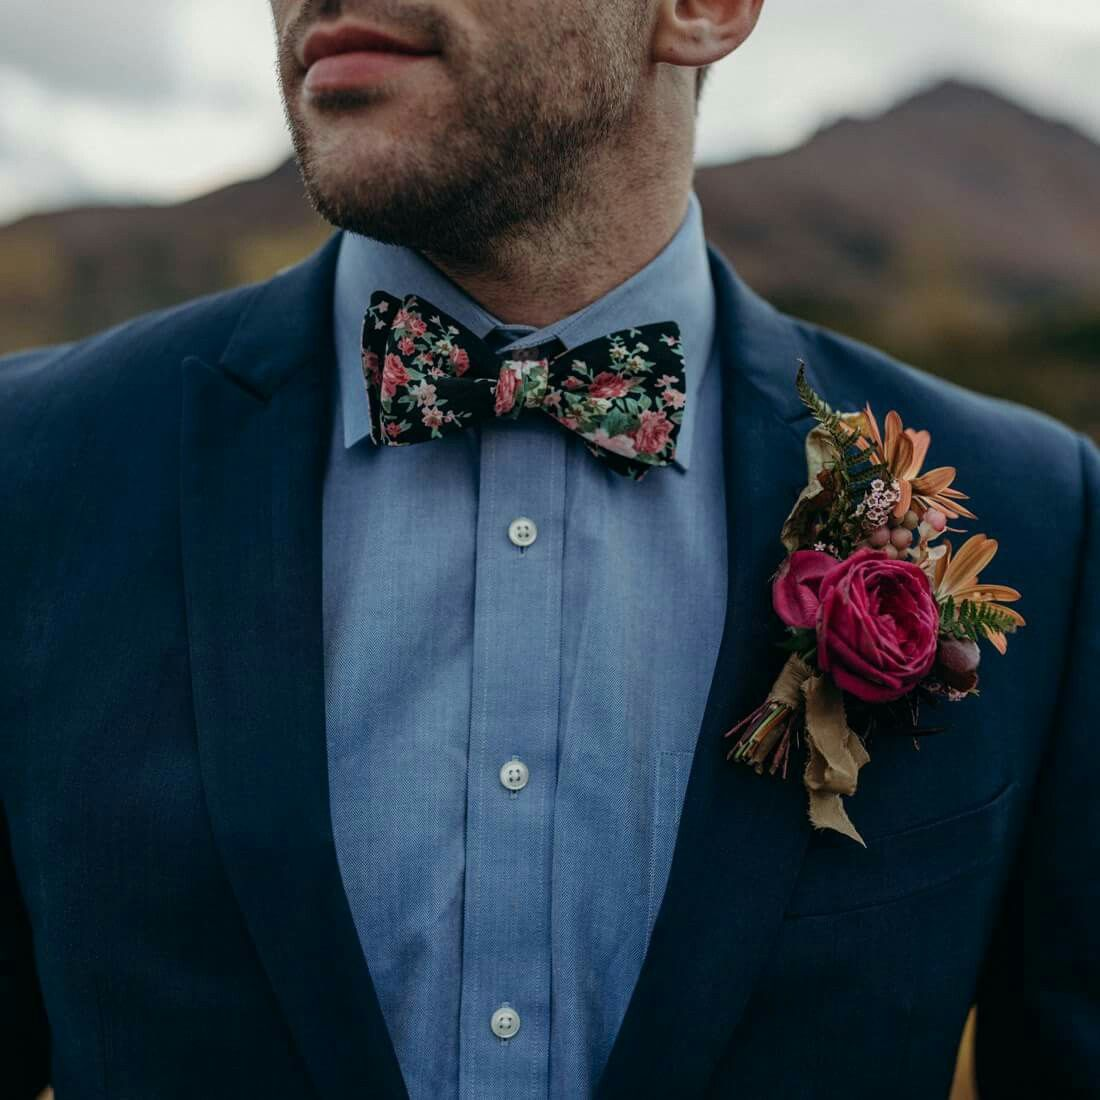 Pin by Parsimony Inspired on Groomsmen Style | Pinterest | Wedding ...